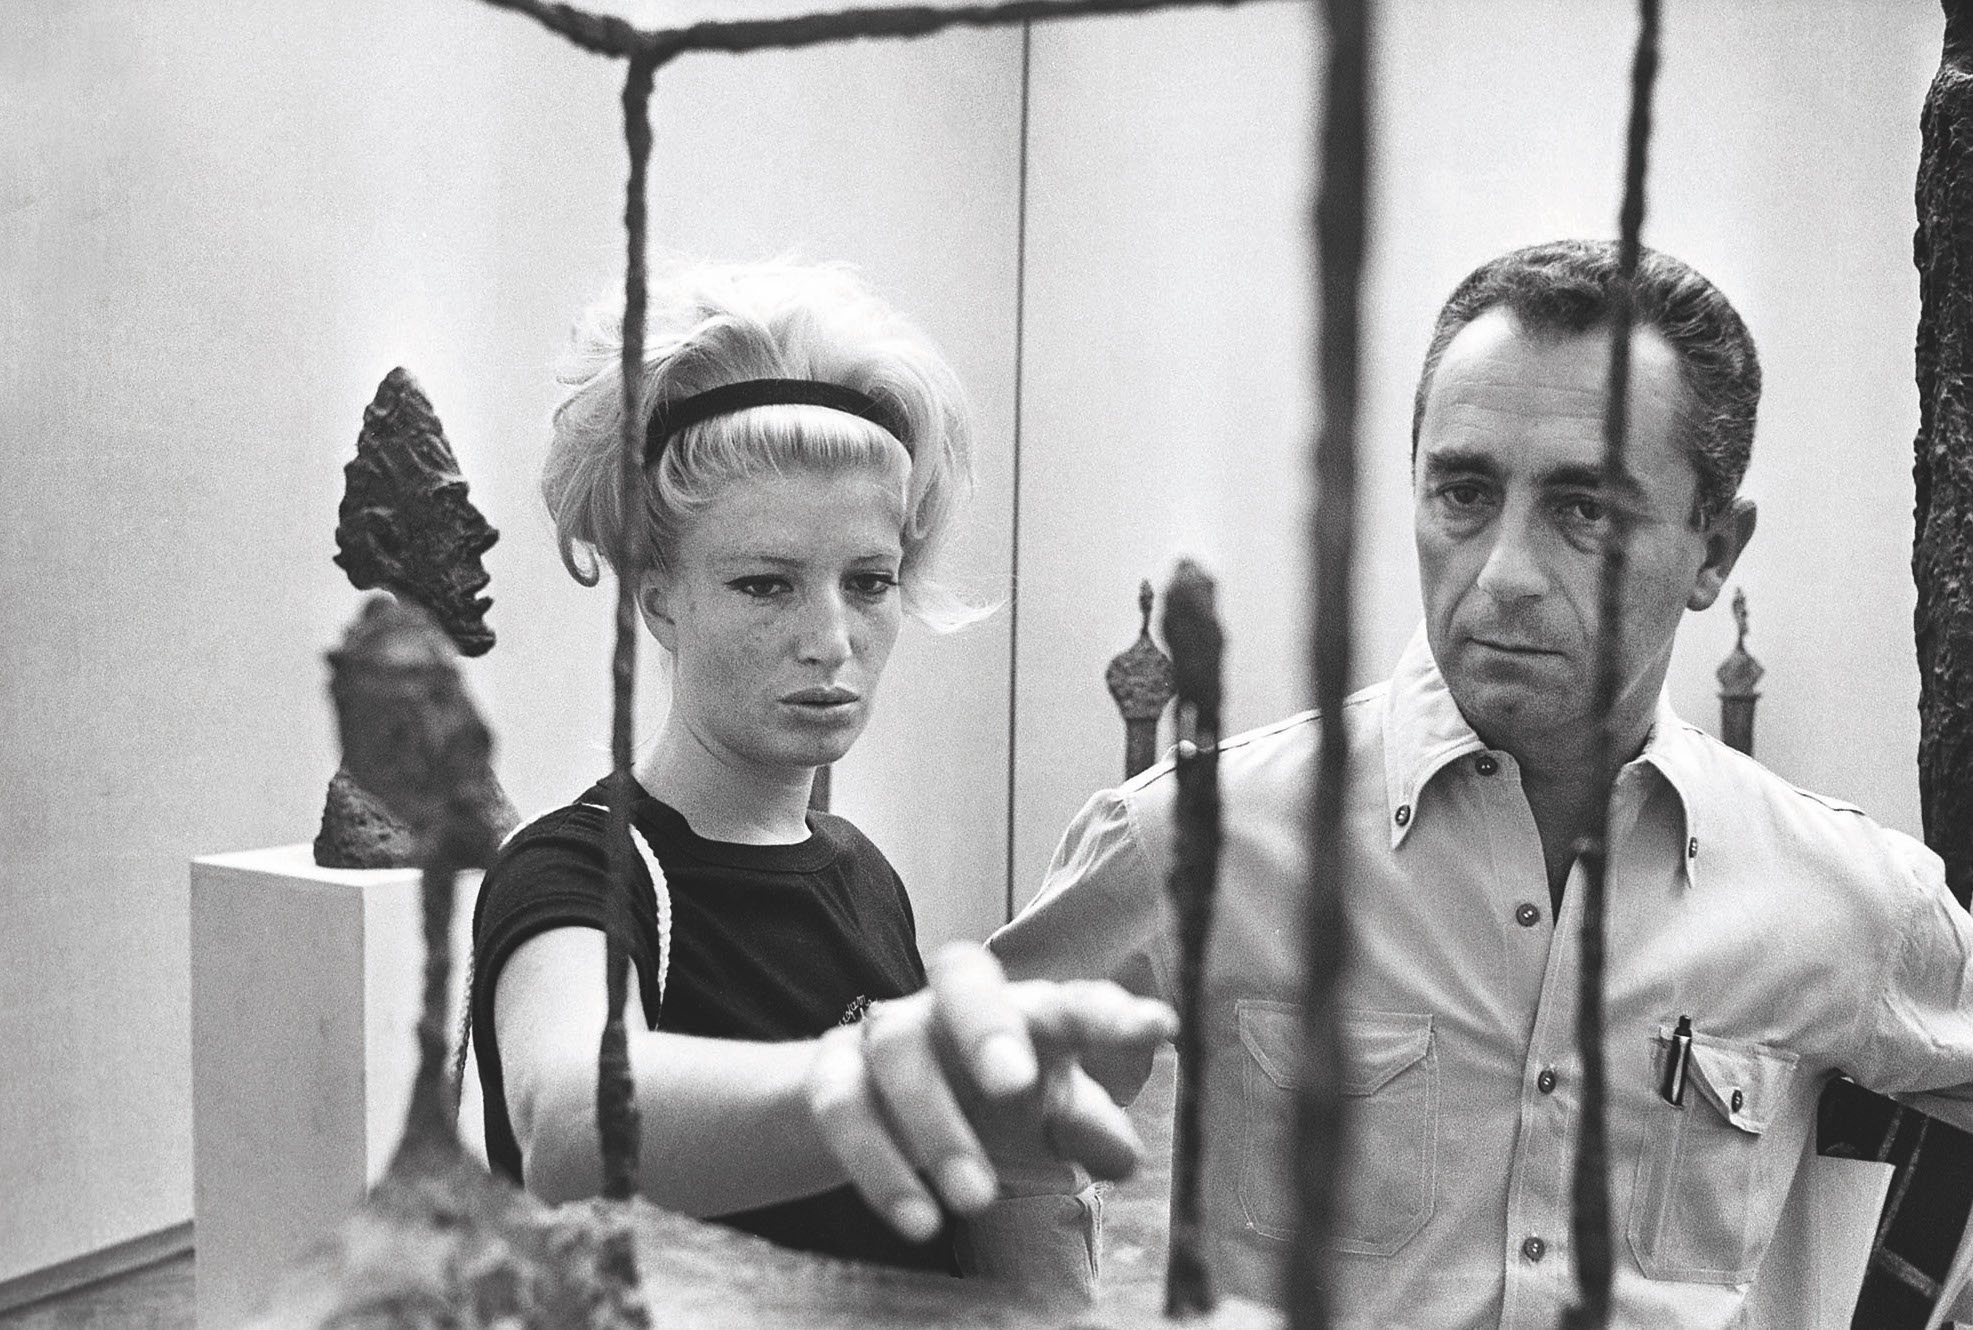 Monica Vitti and Michelangelo Antonioni Biennale of Venice, 1962 in front of Alberto Giacometti